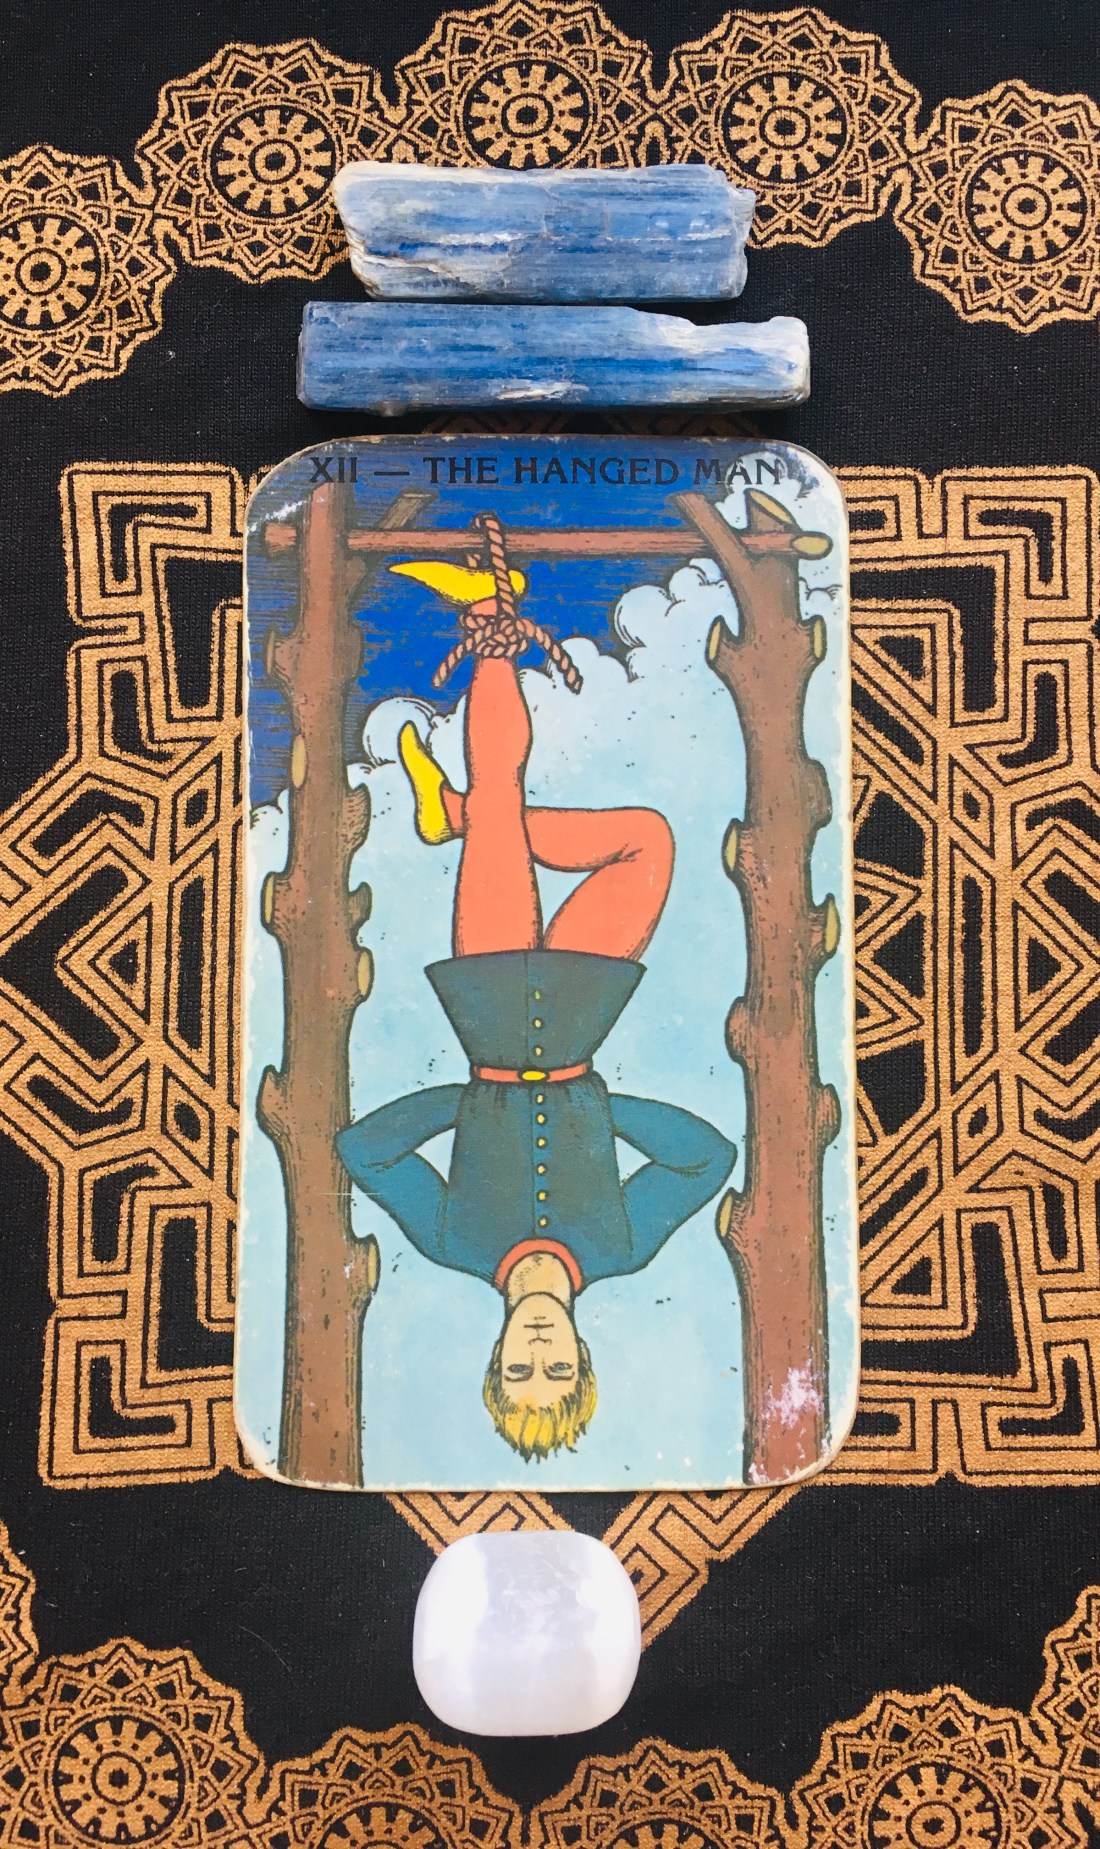 The Hanged Man, Tarot card.